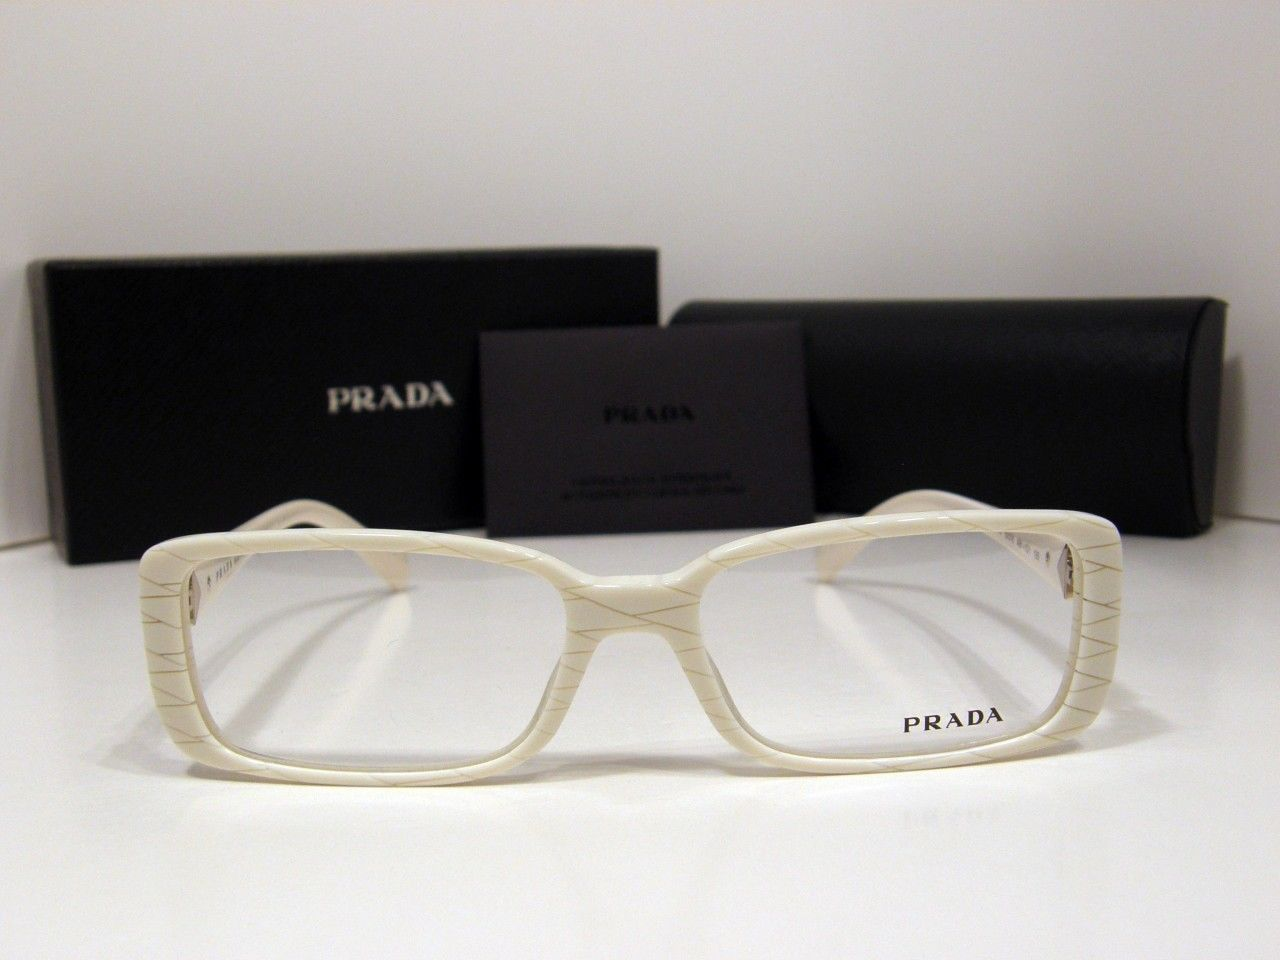 ab00bfc57d15 S l1600. S l1600. New Authentic Prada Eyeglasses VPR11NV AB1-1O1 54mm Made  in Italy VPR 11NV. Free Shipping